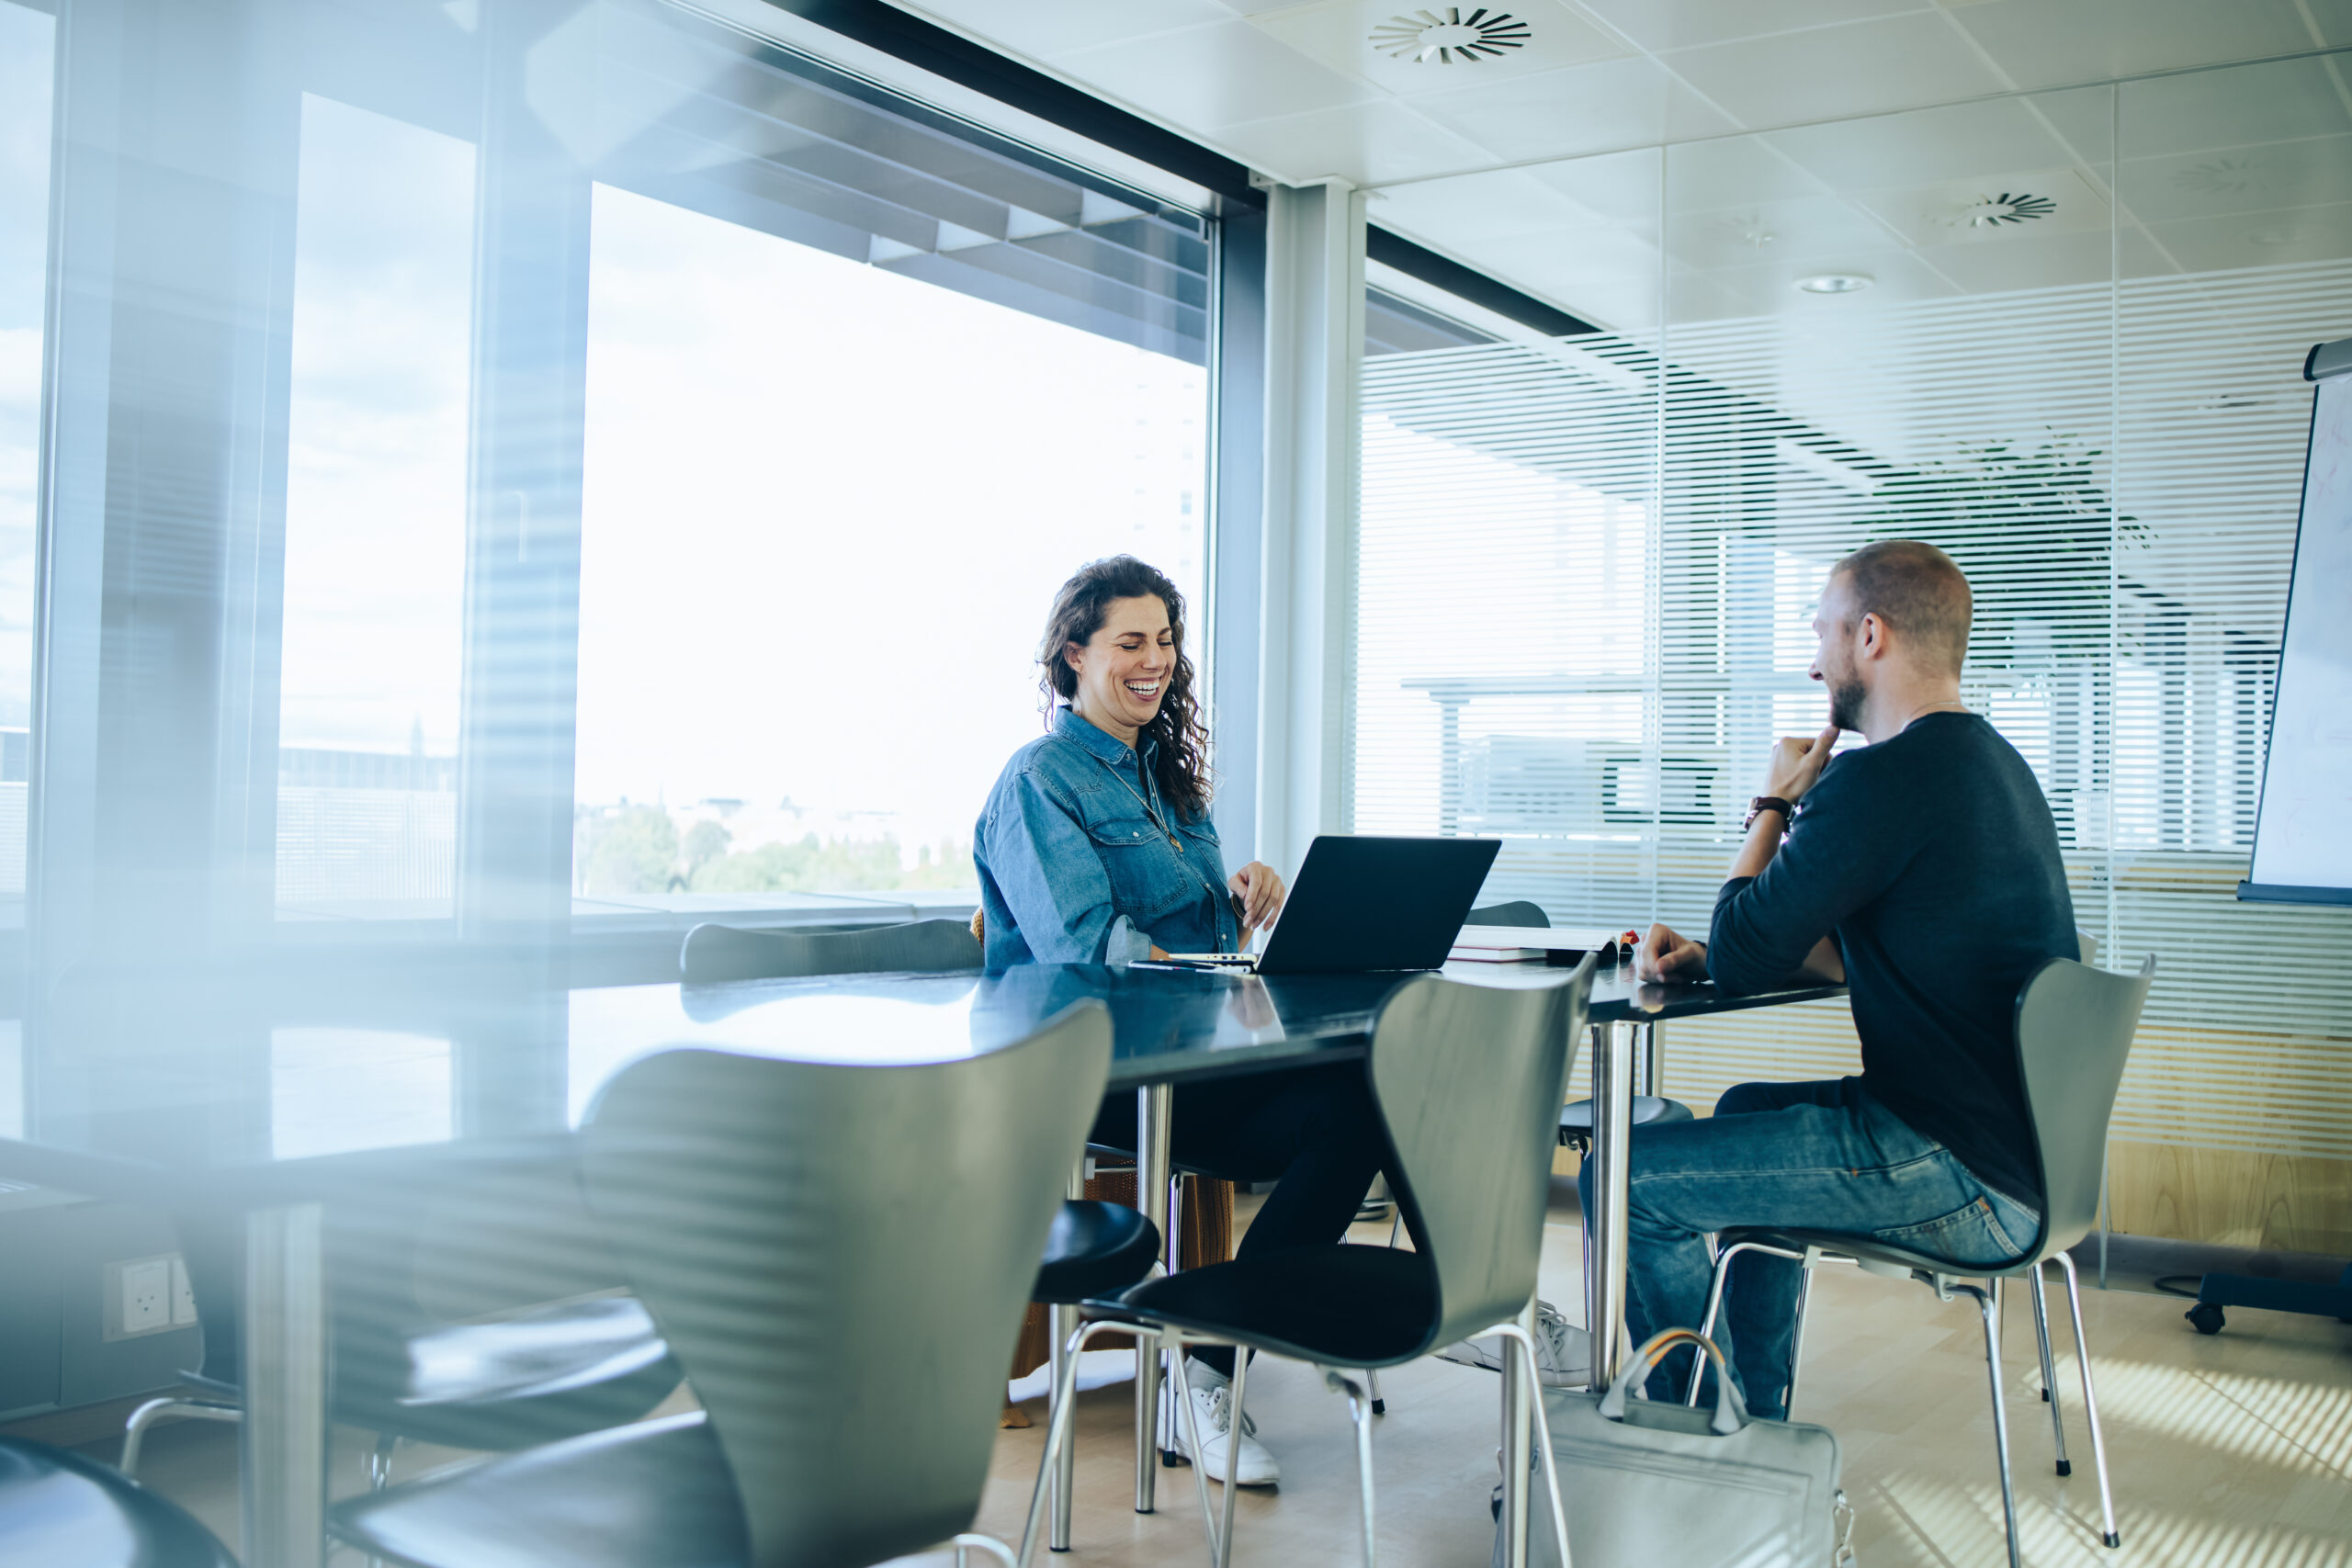 Businesswoman taking interview of a male candidate in office boardroom. Man sitting in a conference room for a job interview.